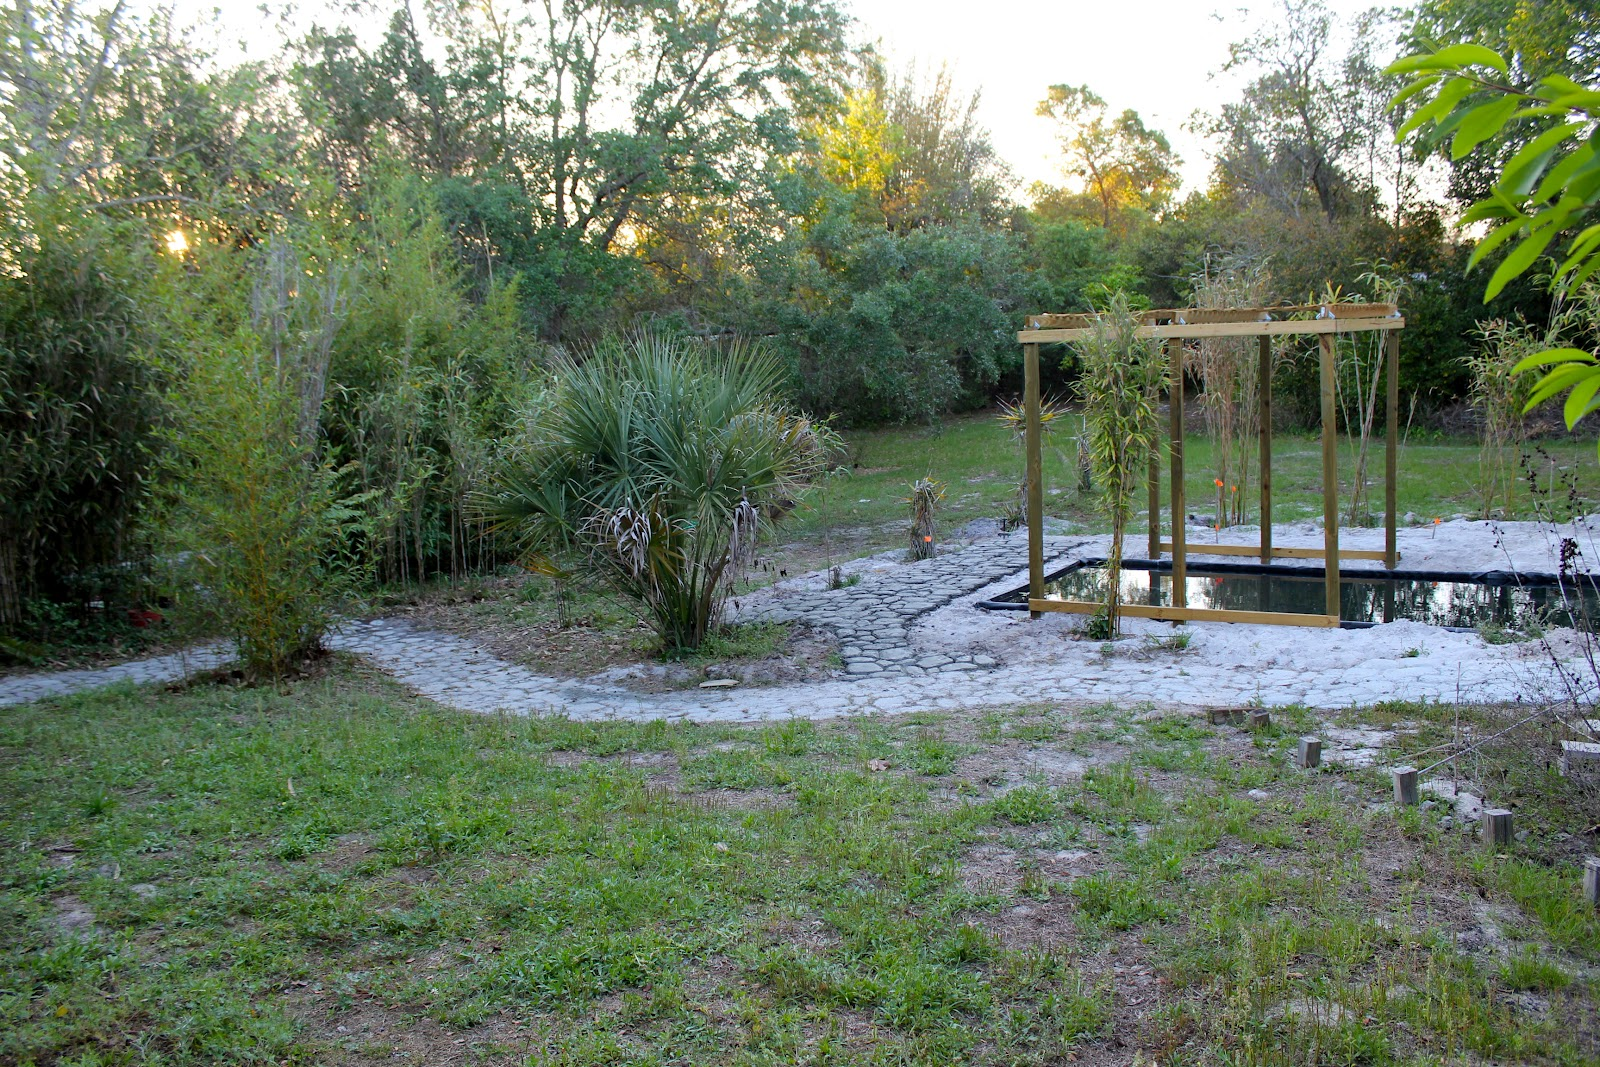 This is a kind of broad view of the backyard space The existing pond